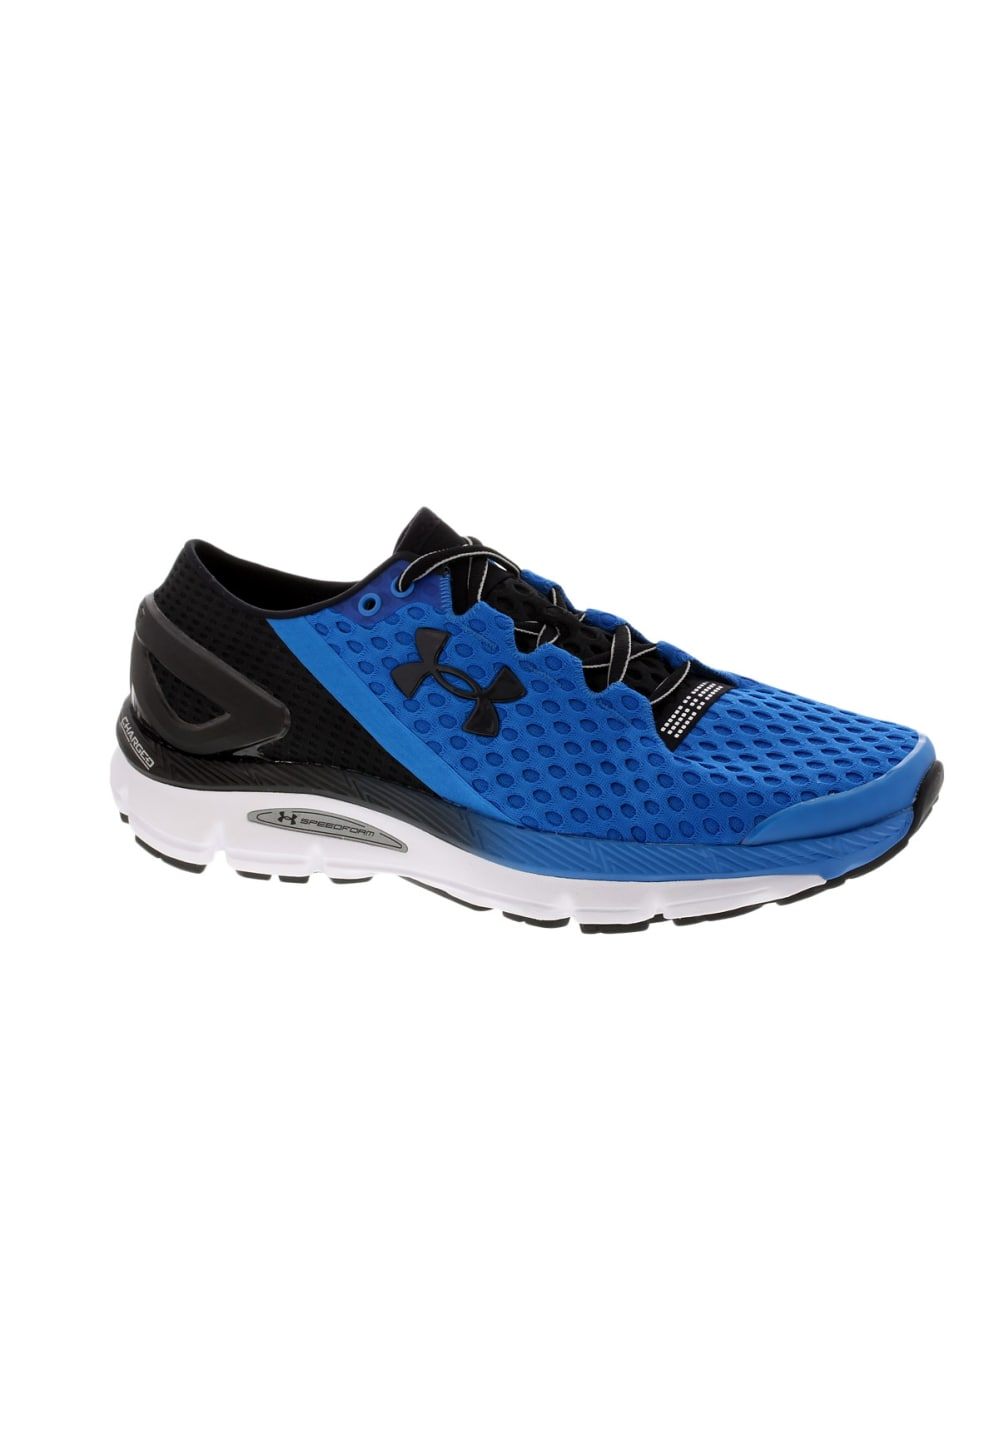 Shopping Product  Q Cool Shoes For Men